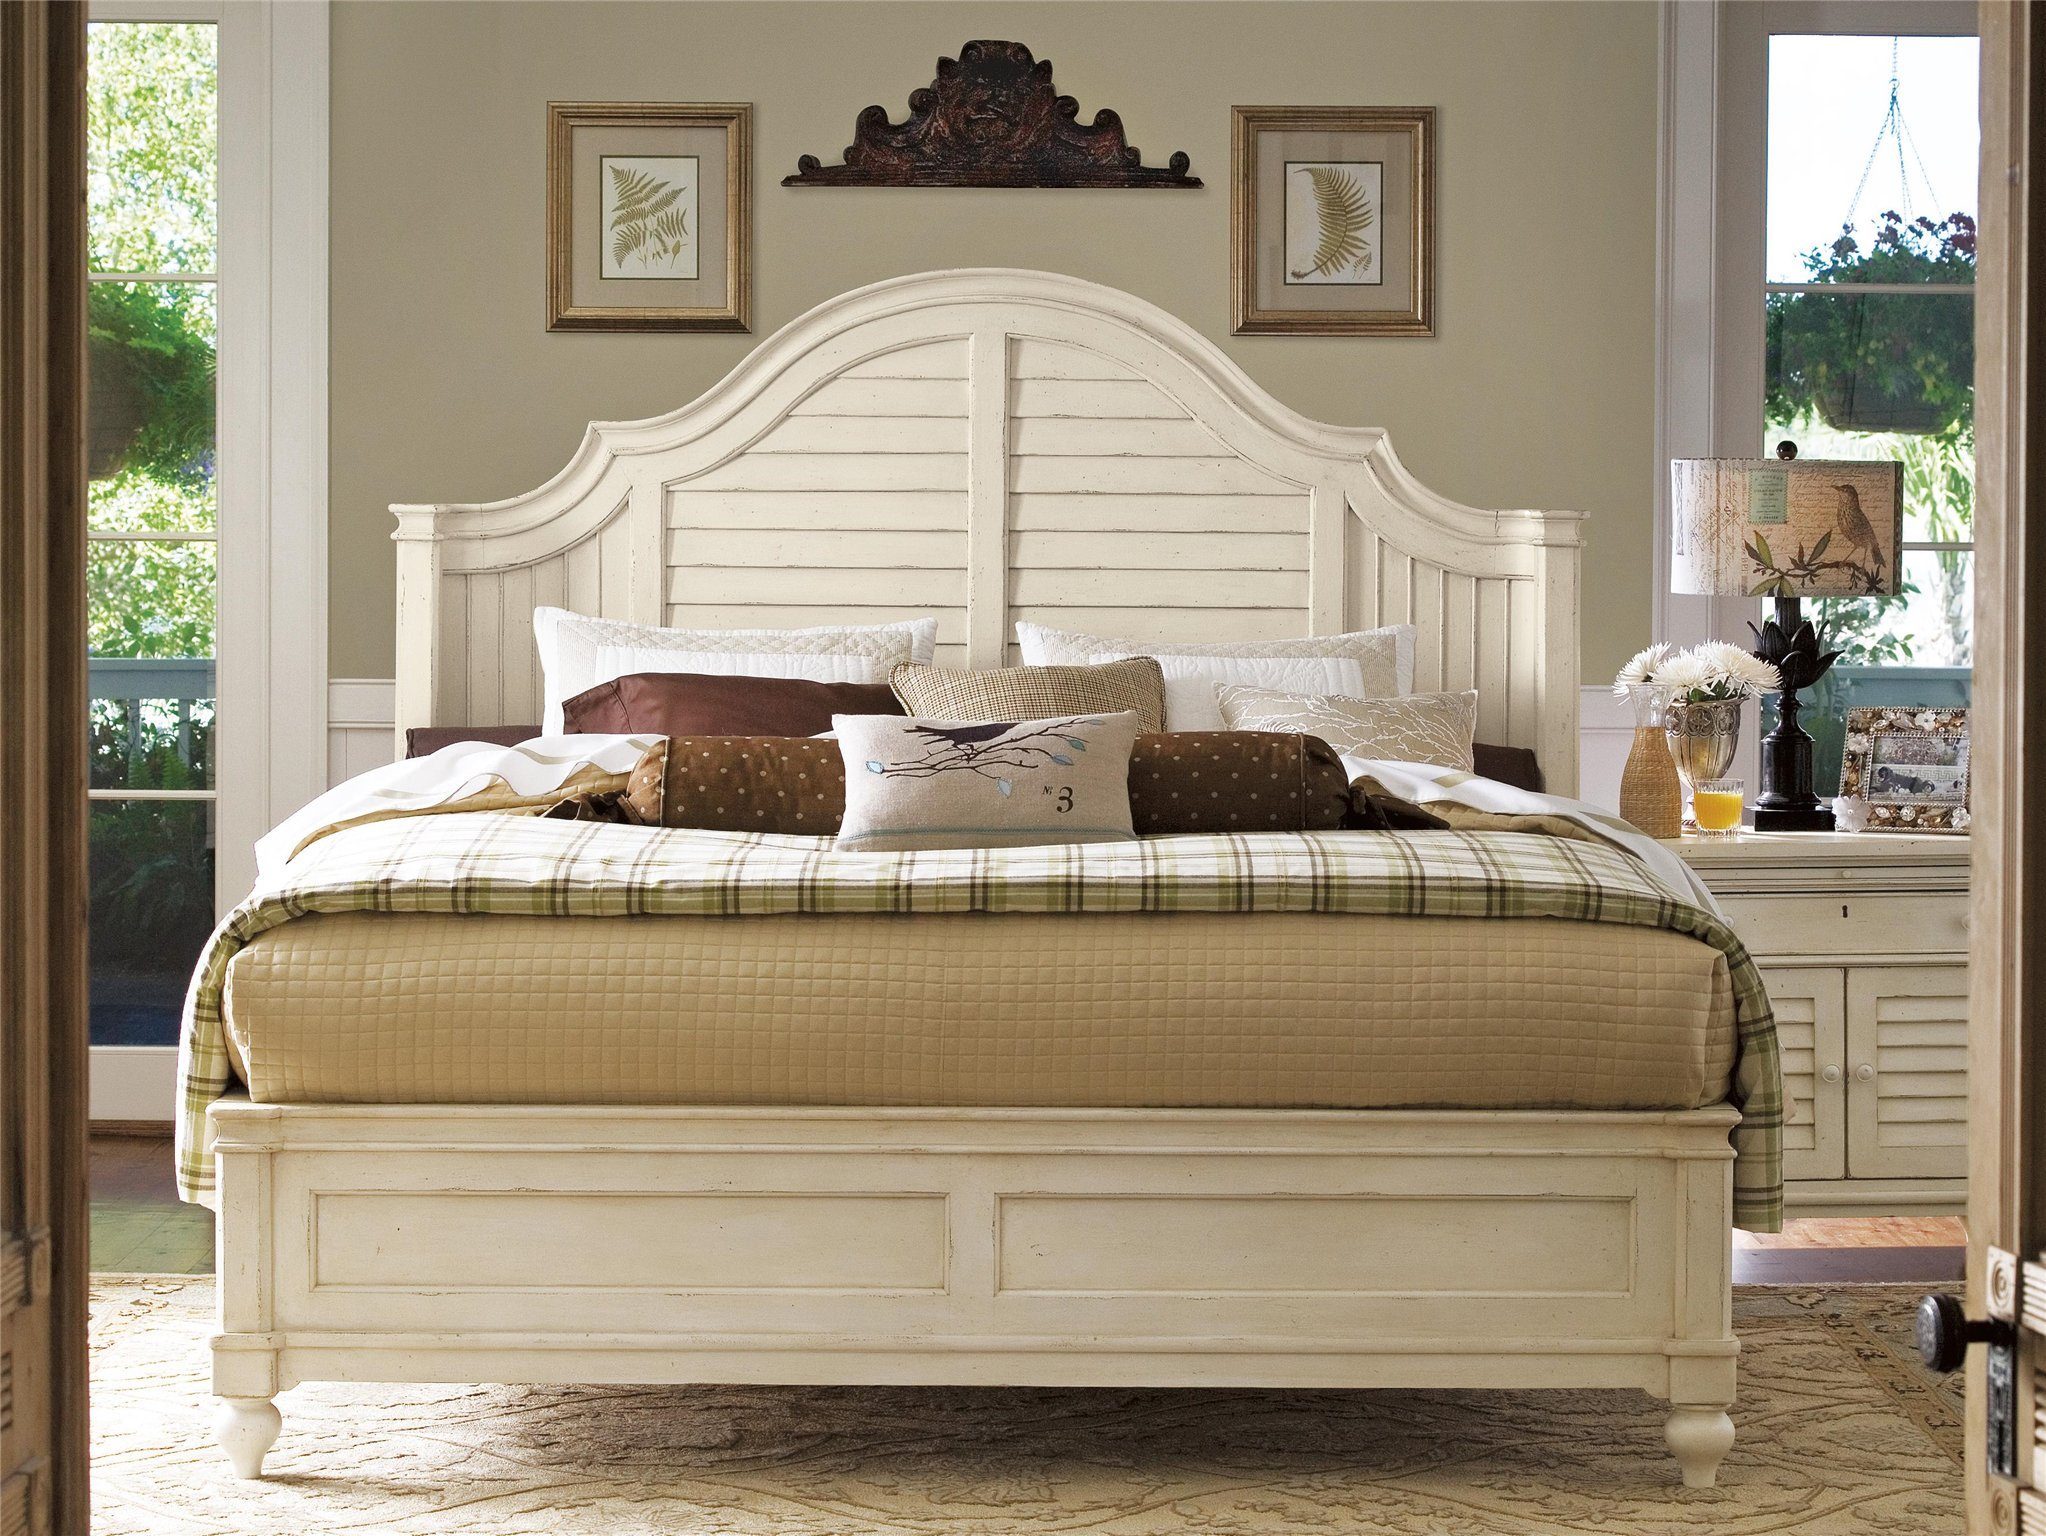 Steel Magnolia Bed (King)